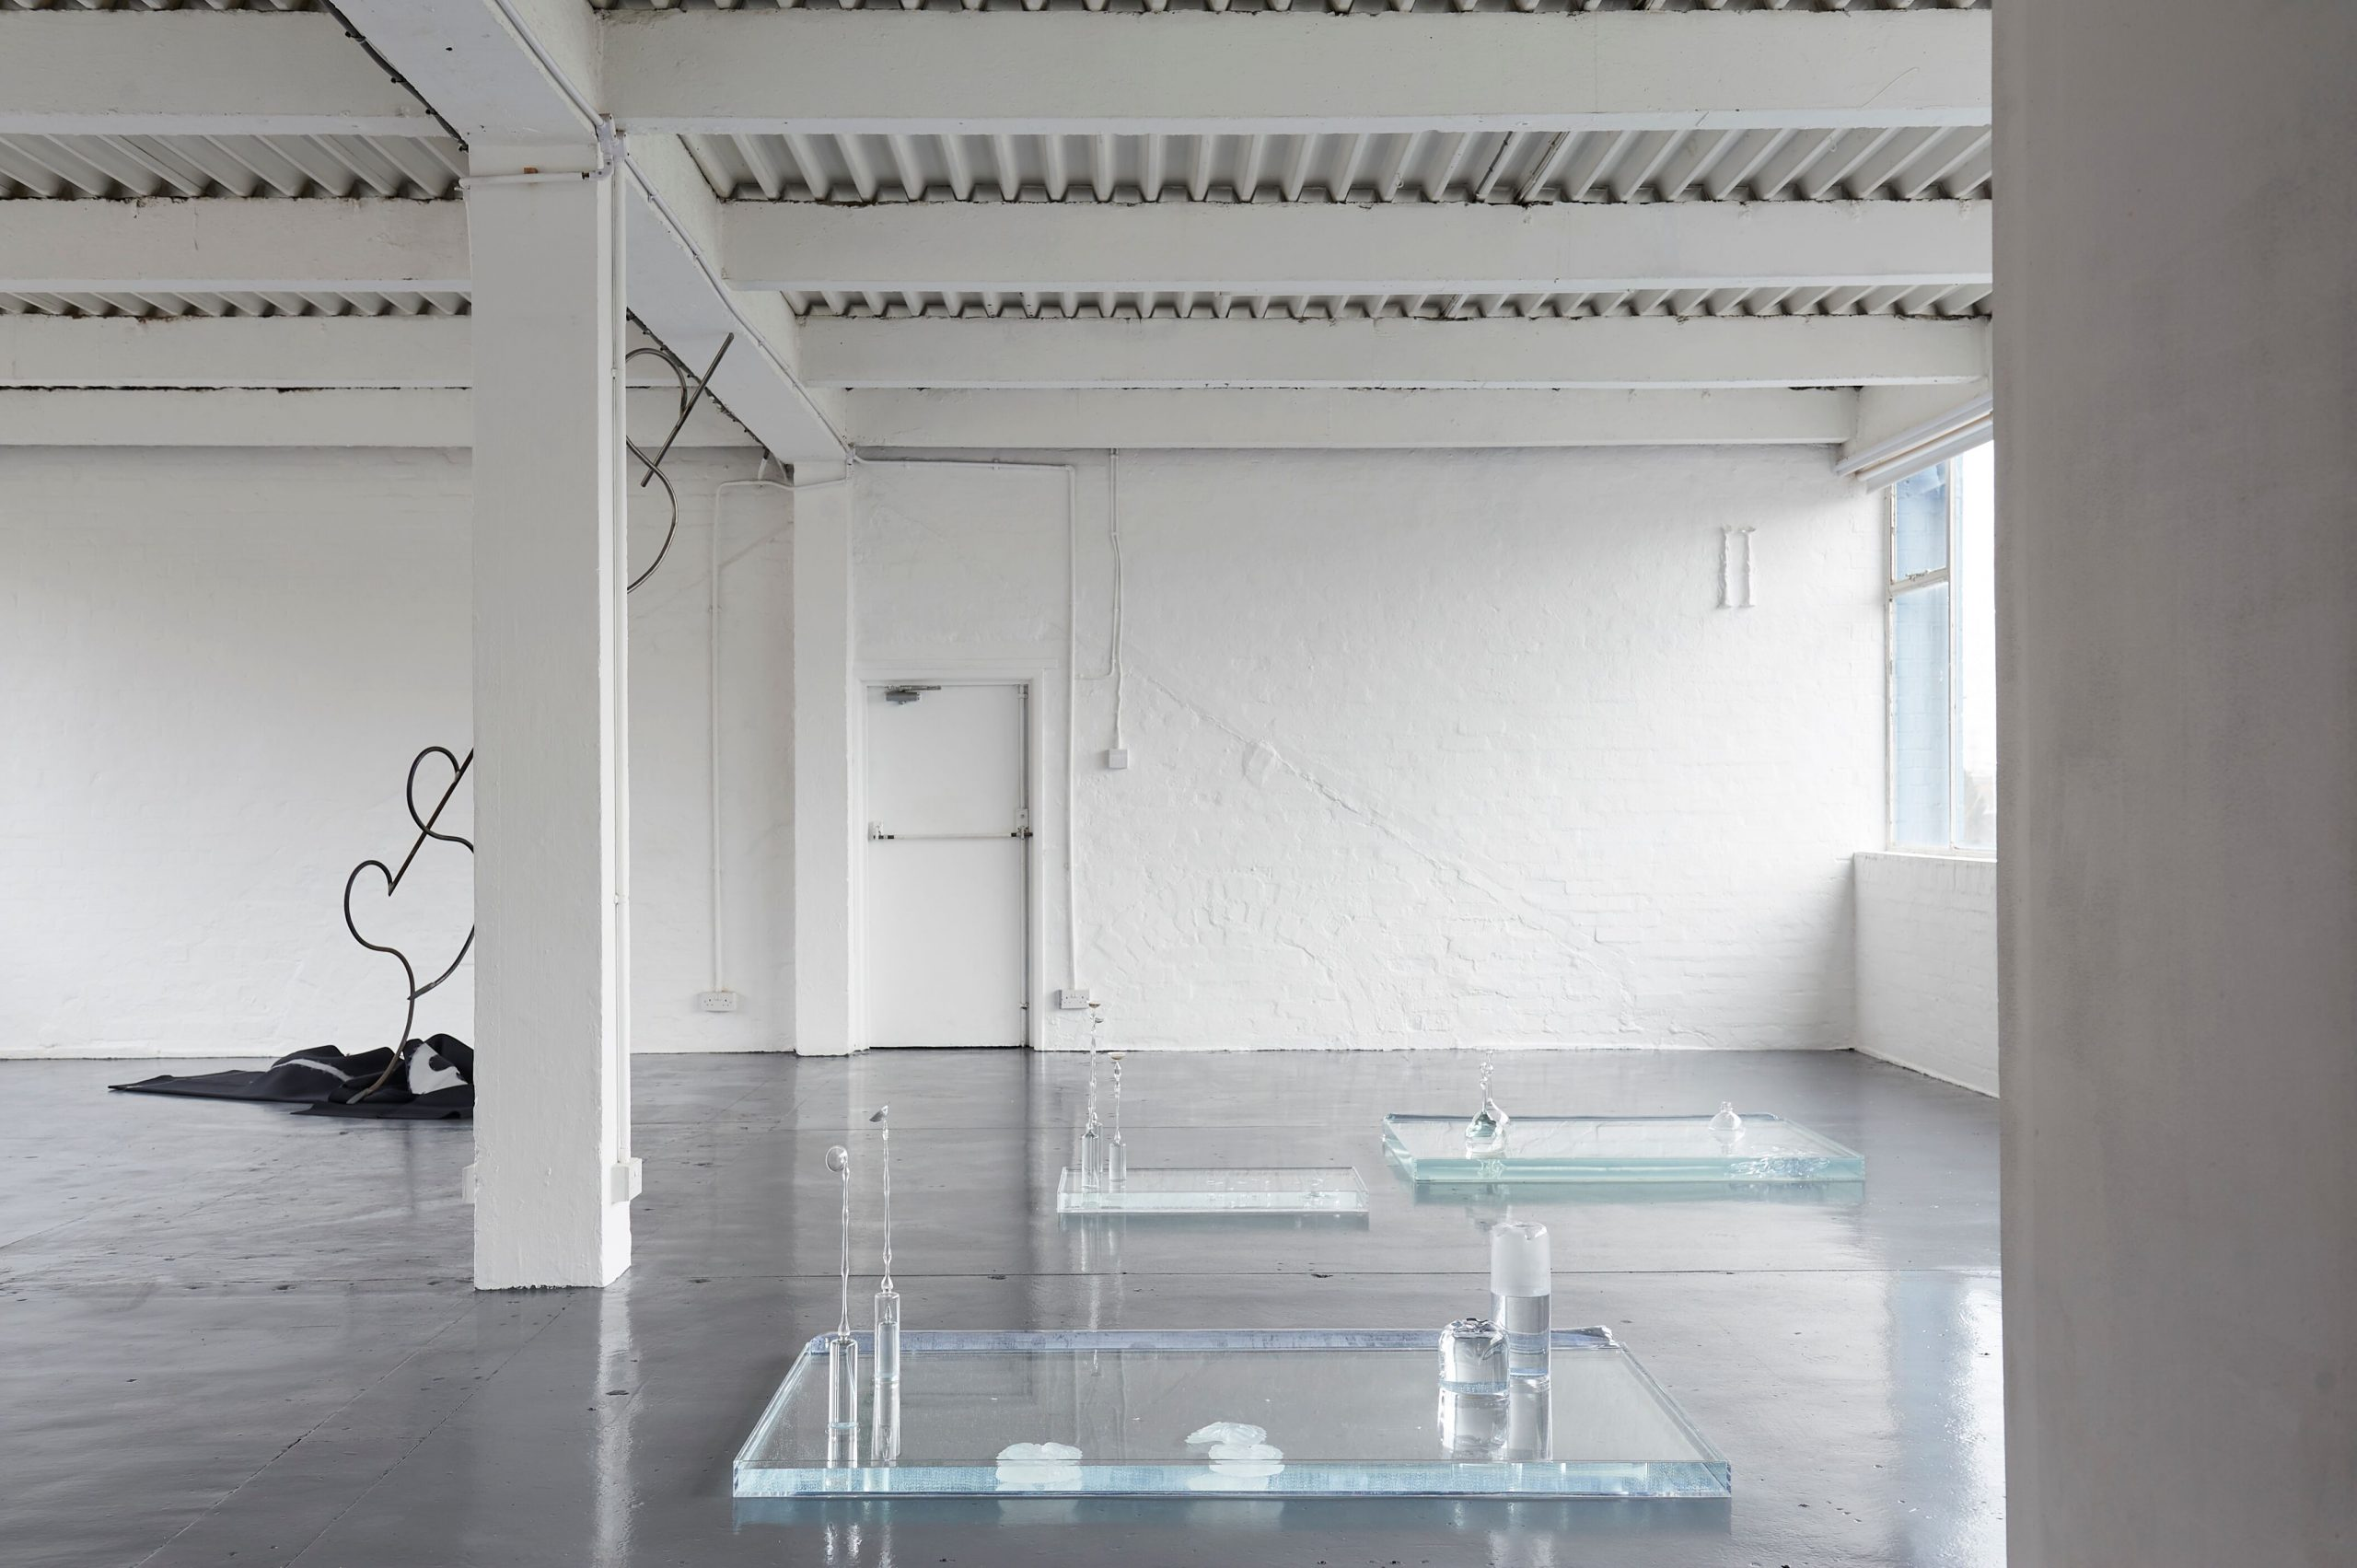 Wide exhibition view three vitrines filled with water are scattered across the floor, two